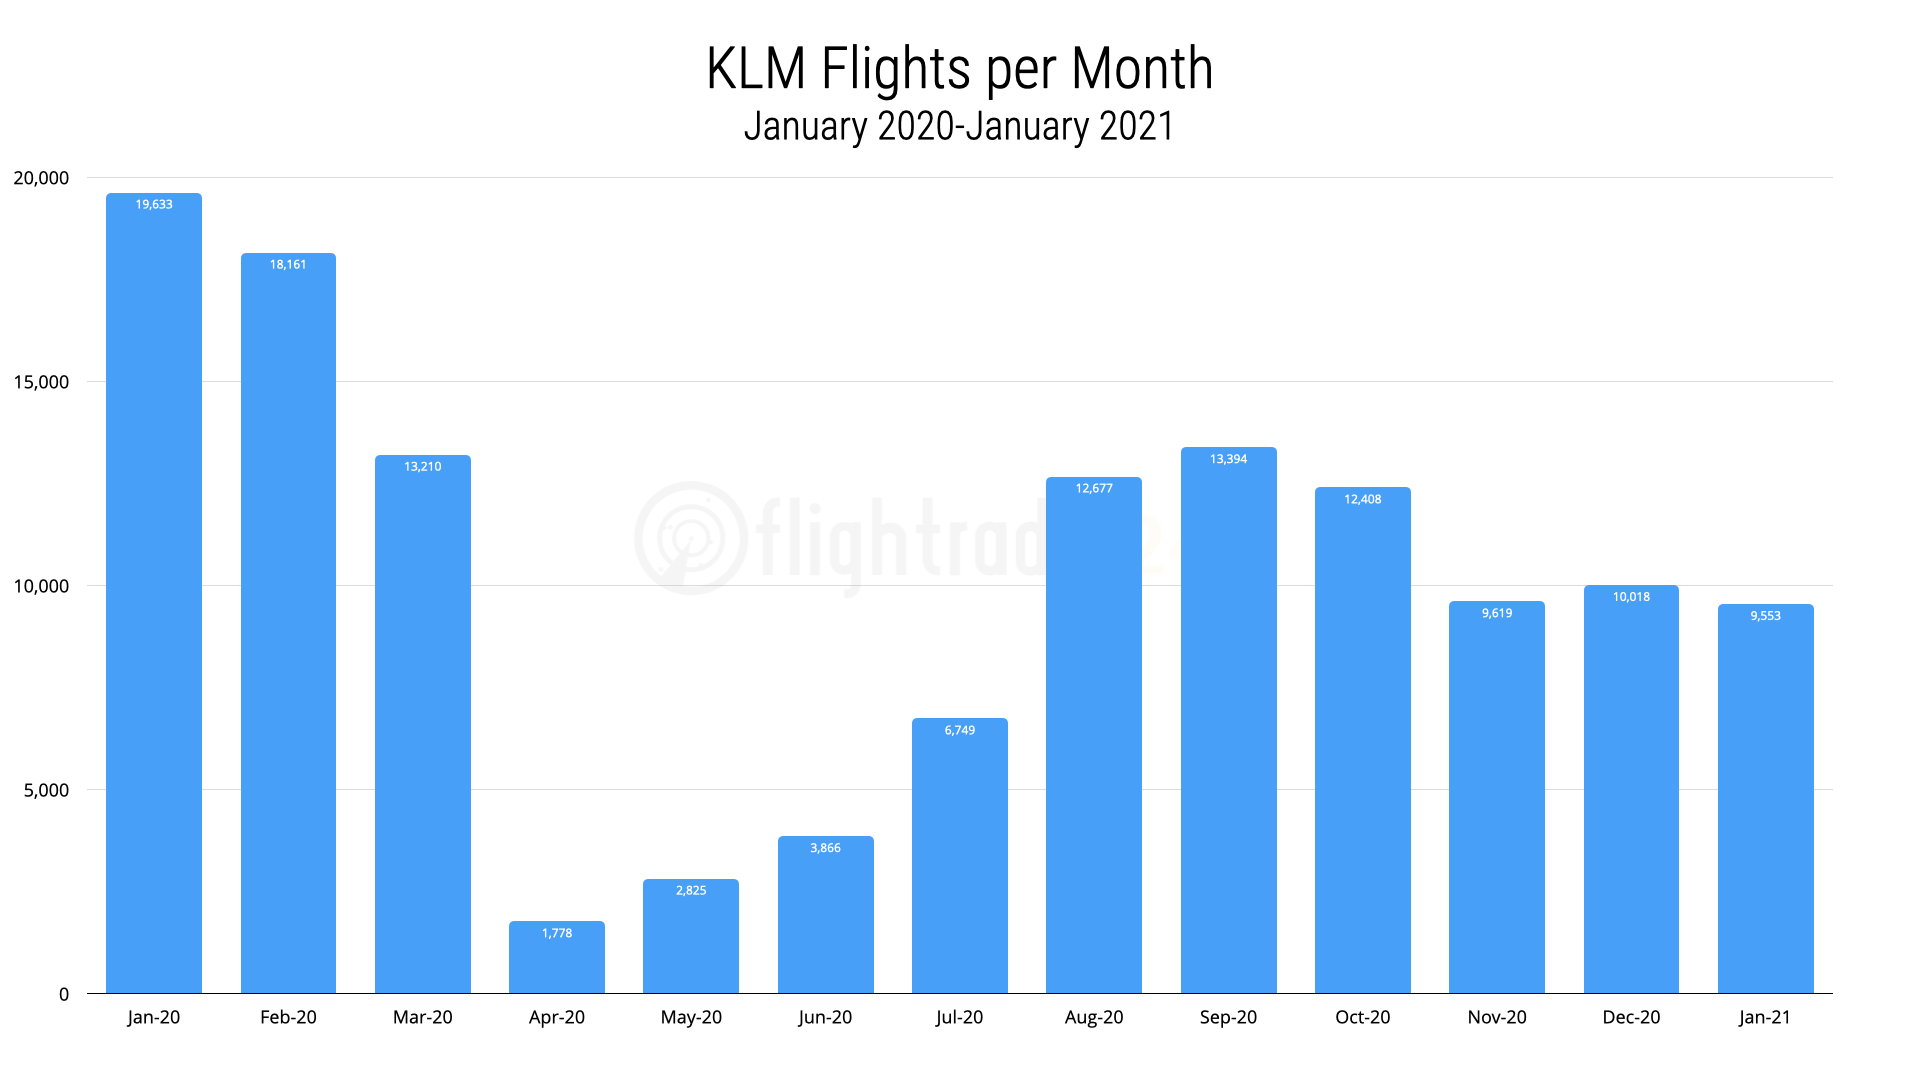 KLM flights by month, January 2020 to January 2021